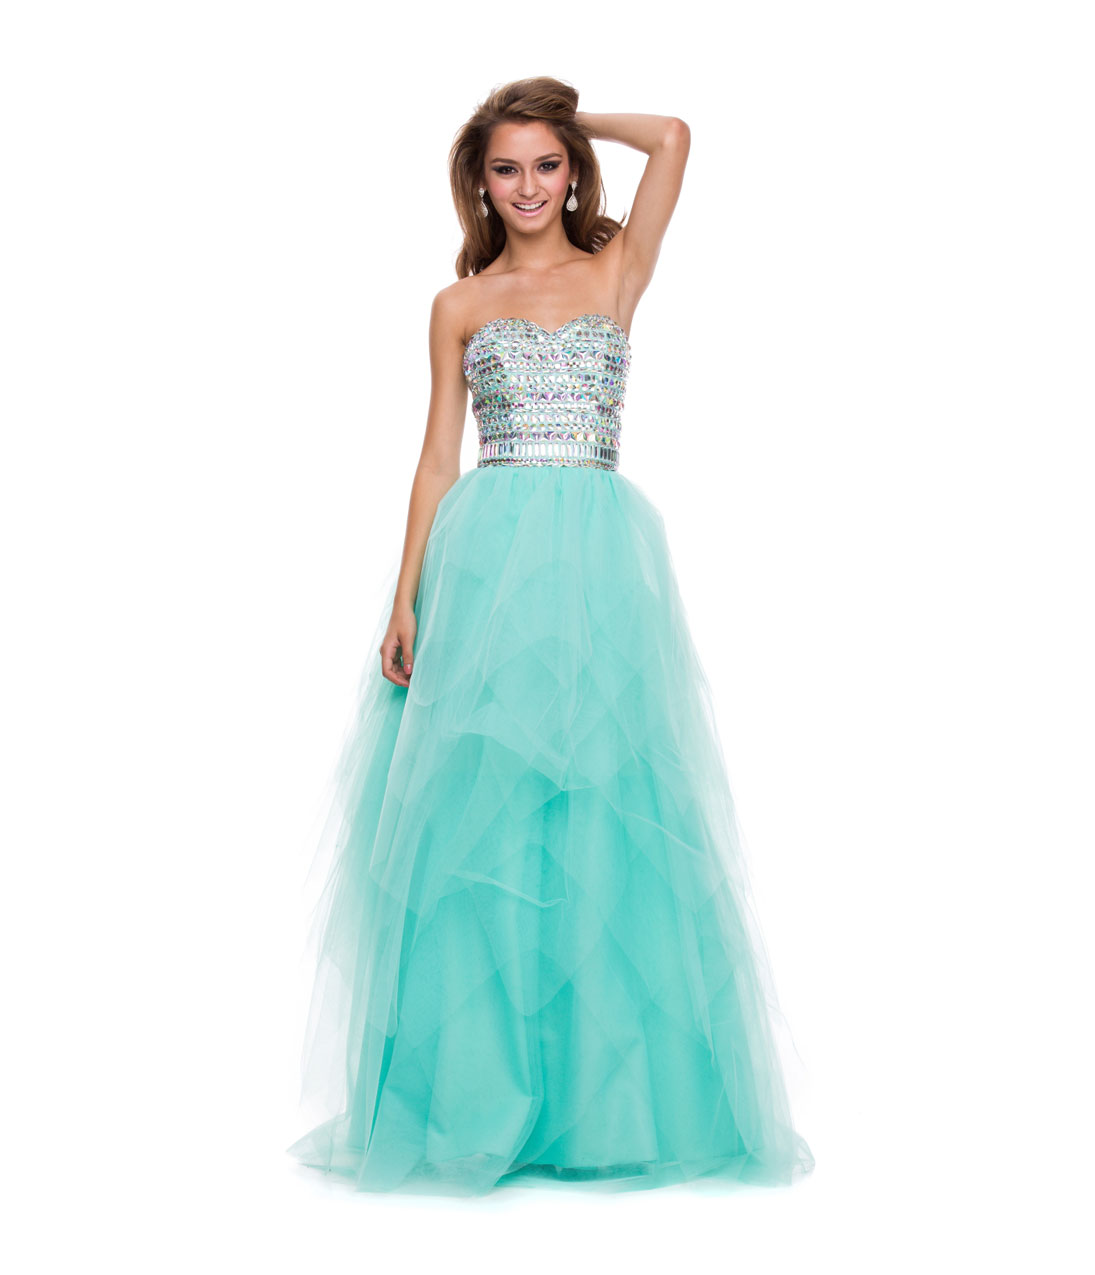 Magnificent Von Maur Prom Dresses Picture Collection - All Wedding ...